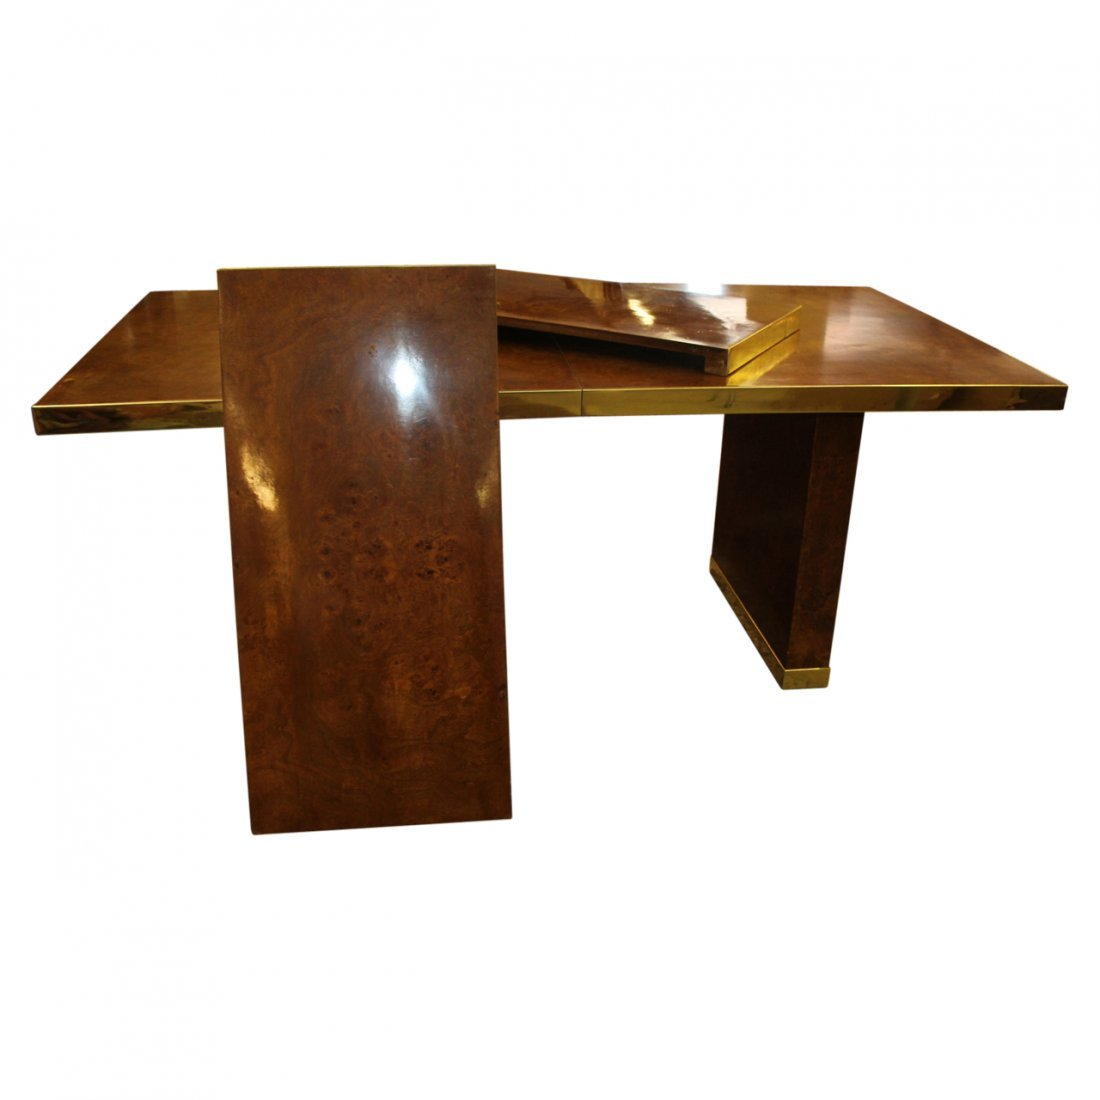 Pierre Cardin Burl Wood and Brass Dining Table - 5